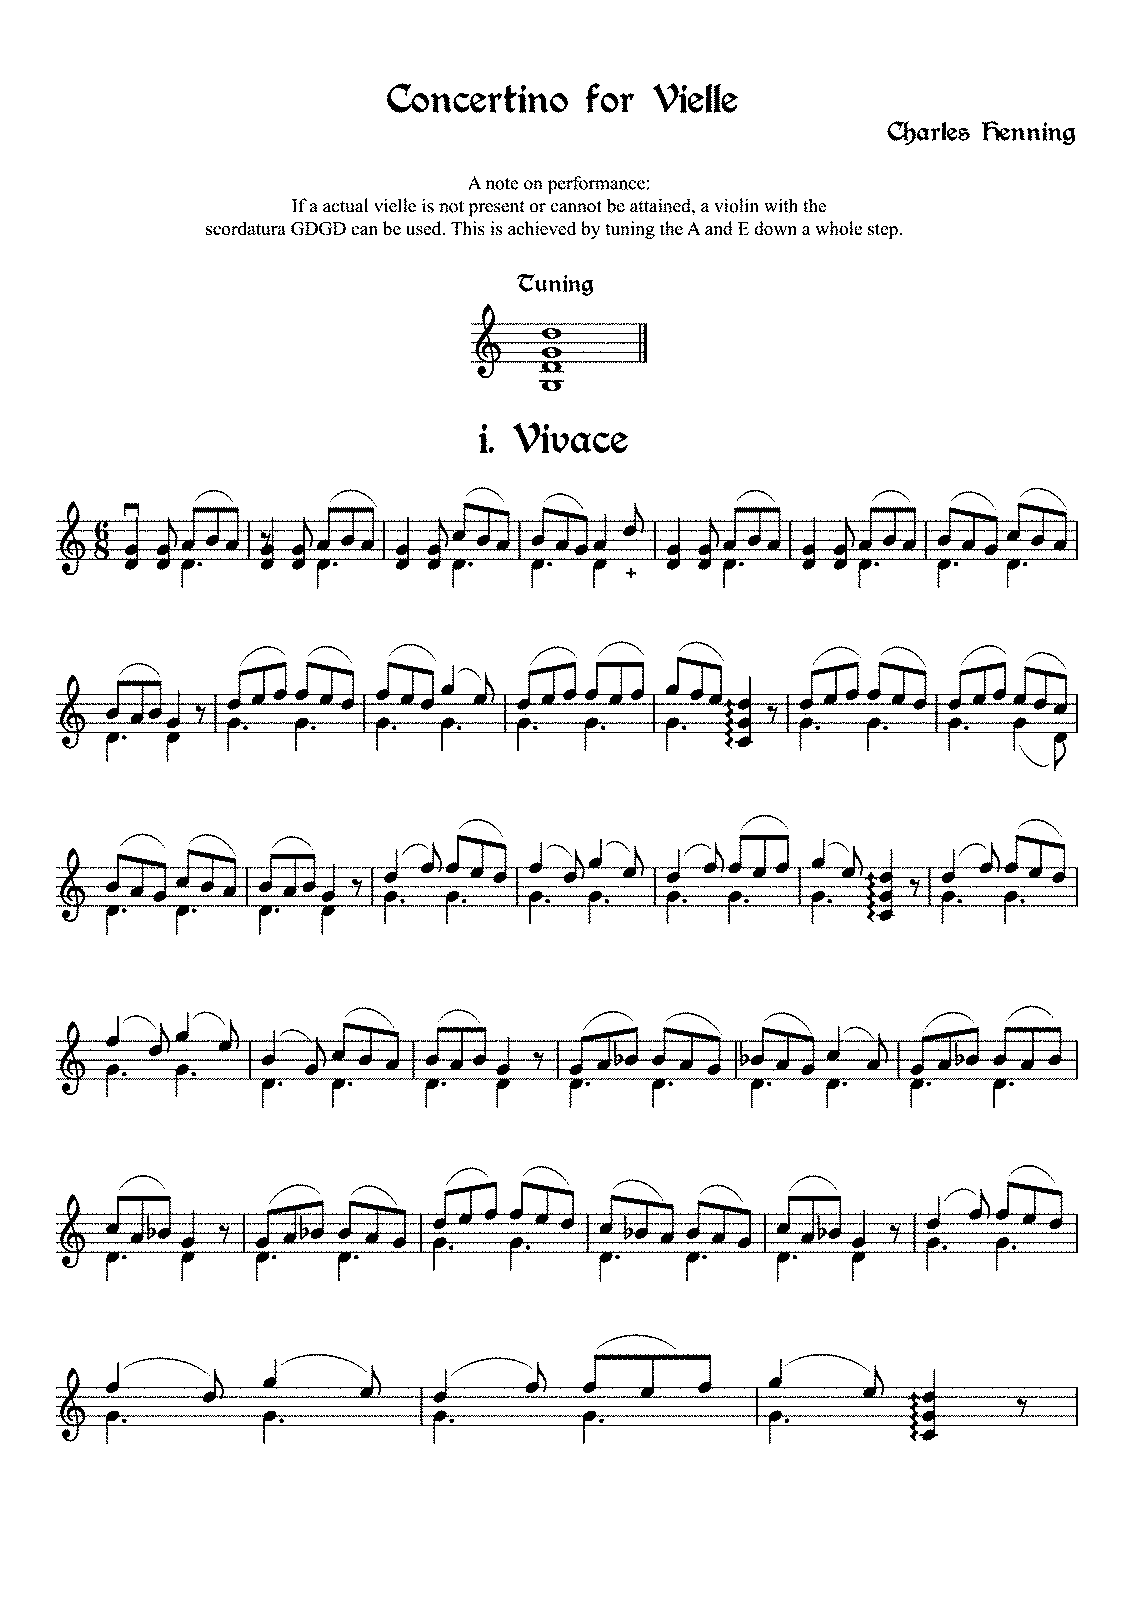 PMLP546726-Concertino for Vielle Revised.pdf